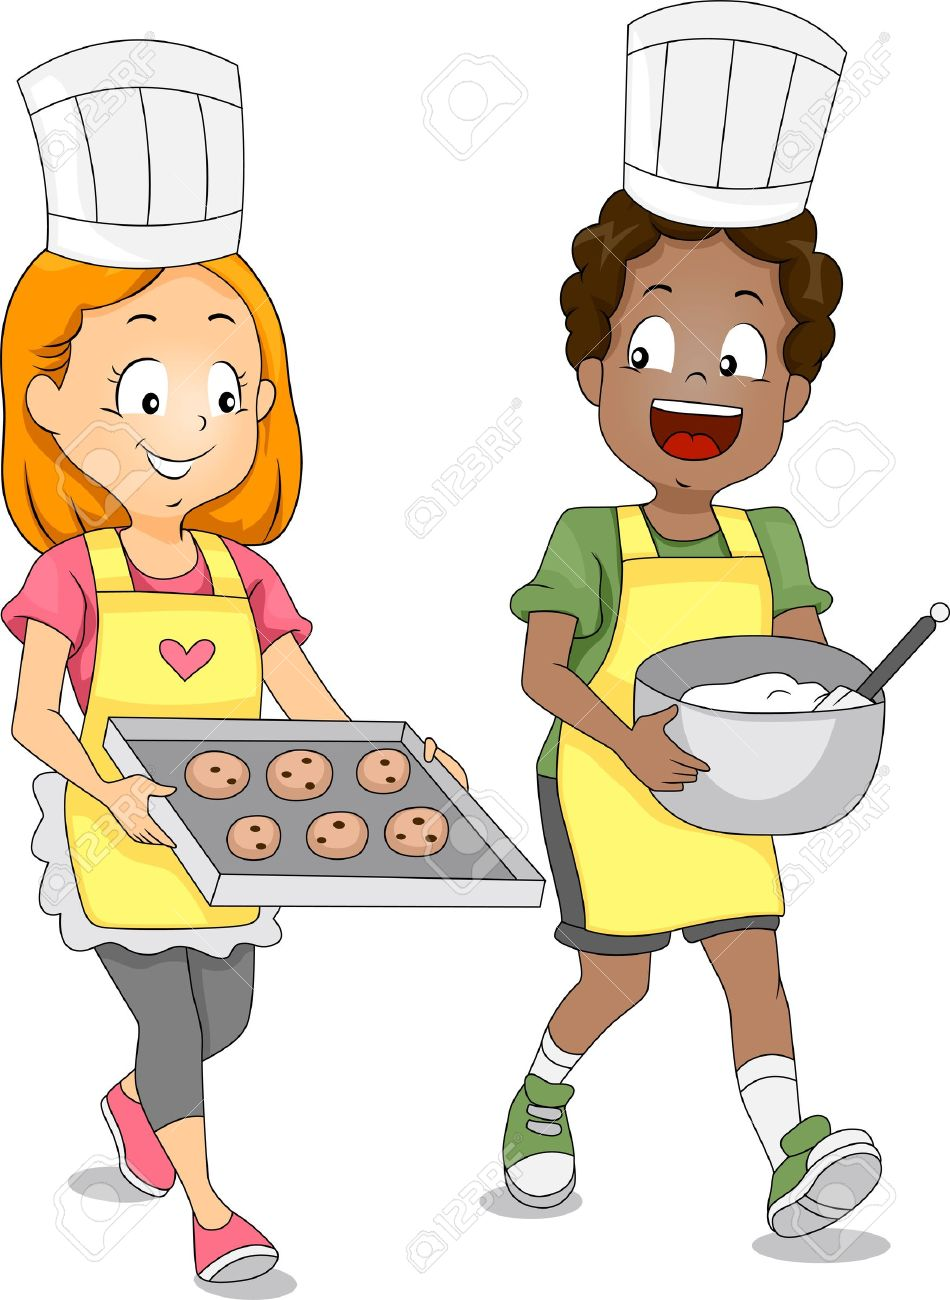 cooking cartoon illustration of kids baking cookies stock photo - Cartoon Picture For Kids